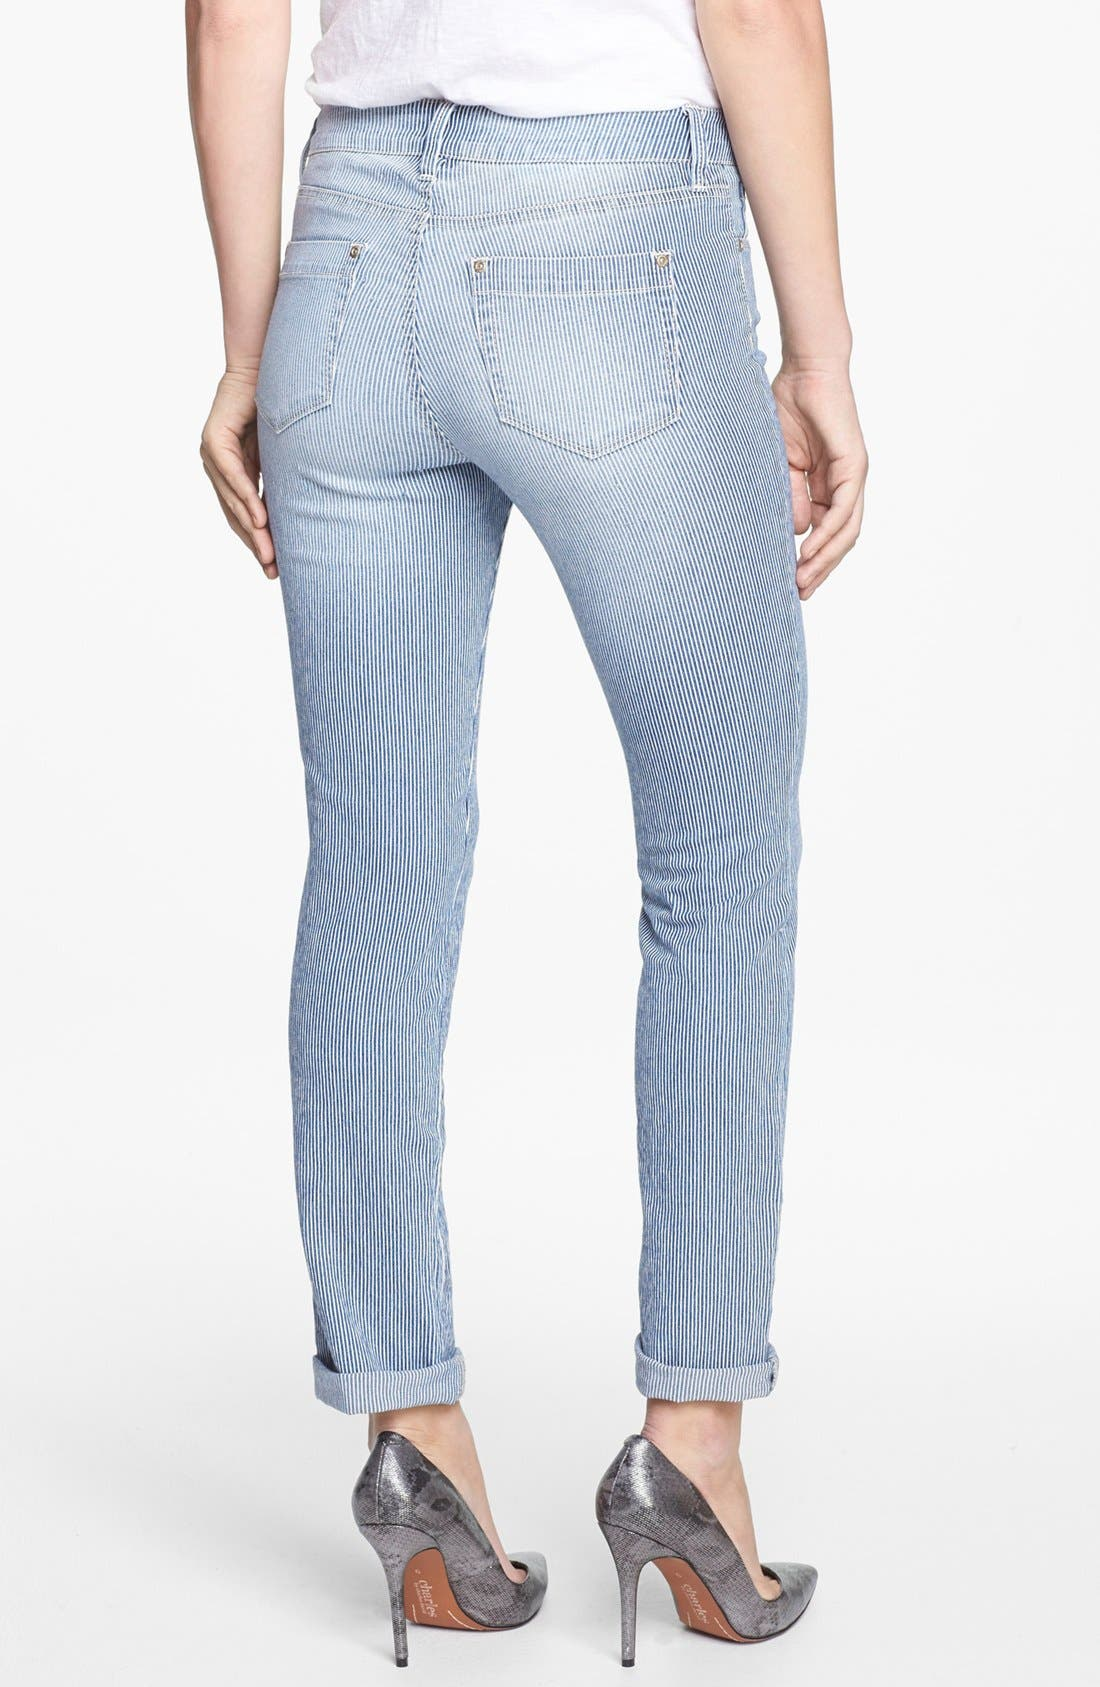 Alternate Image 2  - NYDJ 'Leann' Stretch Skinny Boyfriend Jeans (Old West Stripe) (Petite)